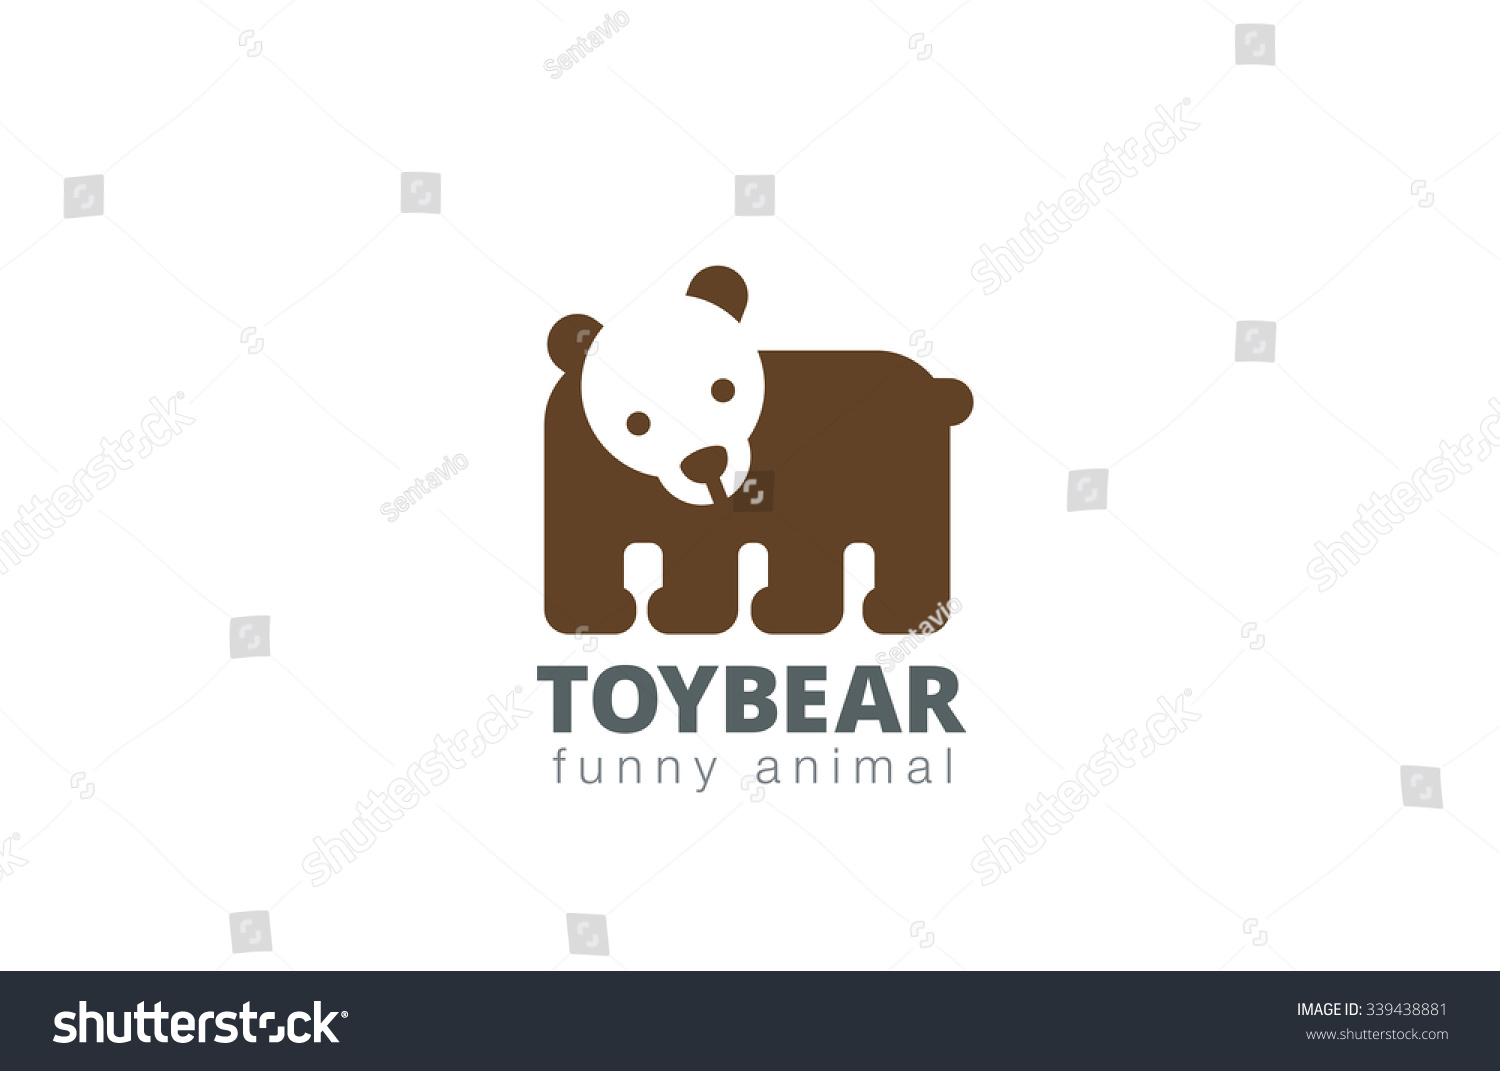 funny toy bear logo design vector stock vector royalty free